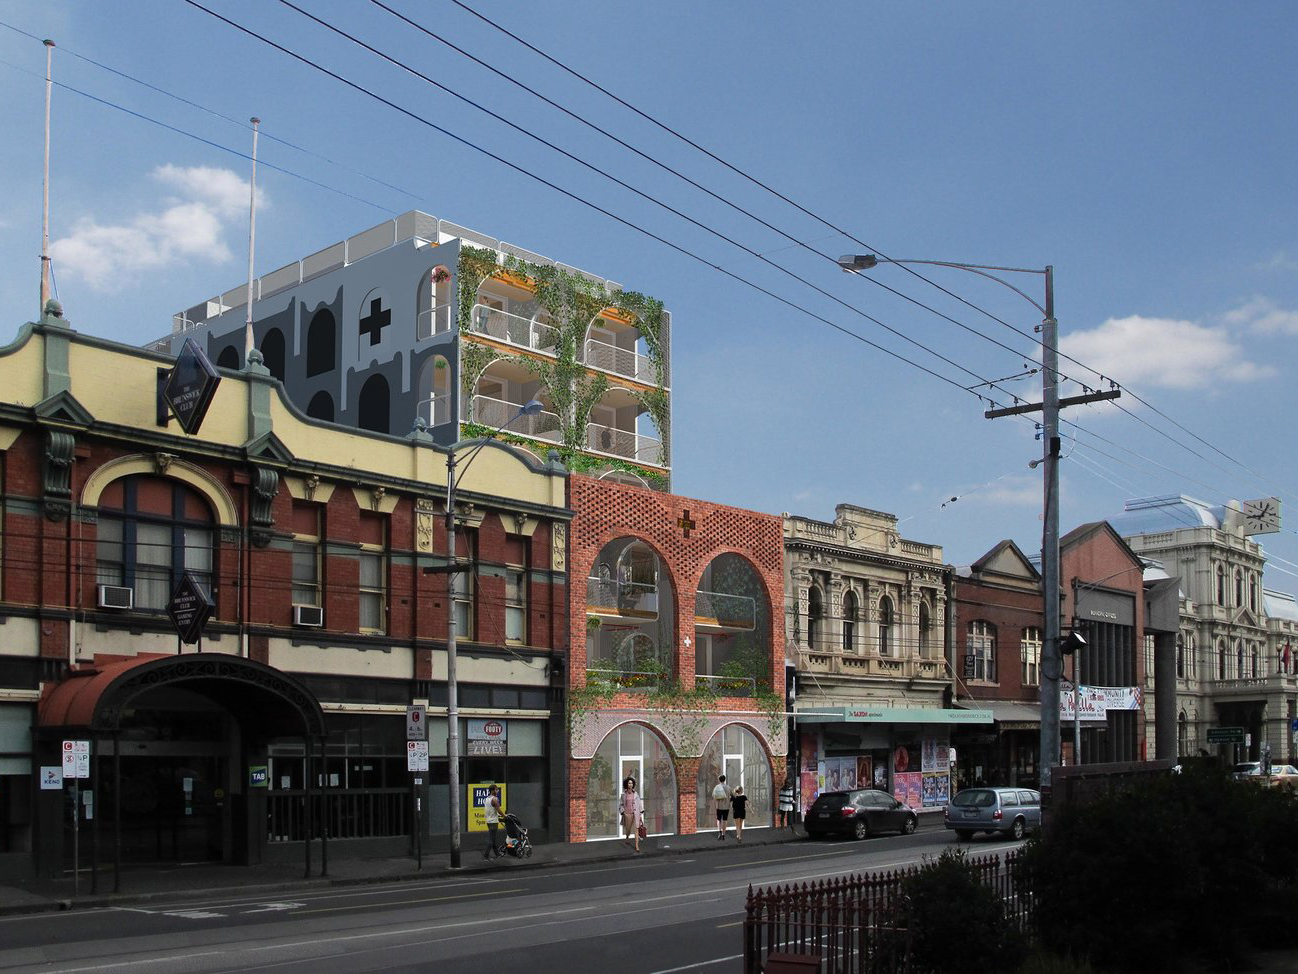 The suburb of Brunswick, located four kilometres north of the Melbourne CBD is experiencing a housing revolution of sorts, with the rise of socially and environmentally responsible housing which prioritises good design outcomes and community building over the bottom line. Image: Supplied